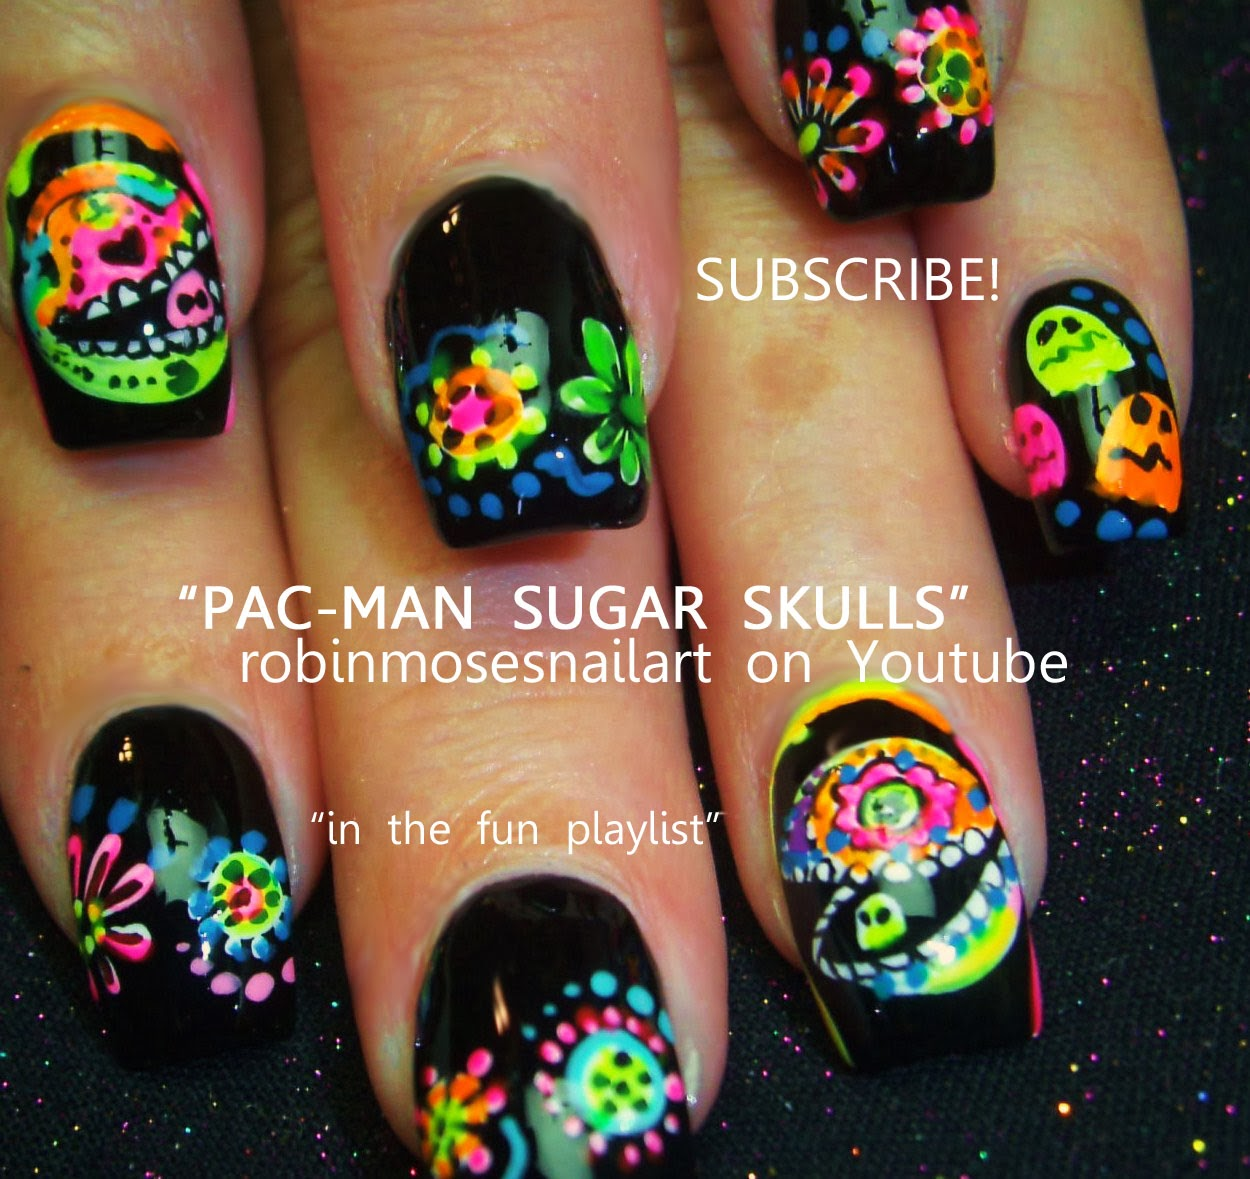 Robin moses nail art halloween nails skull nails day of the neon pacman nails prinsesfo Image collections